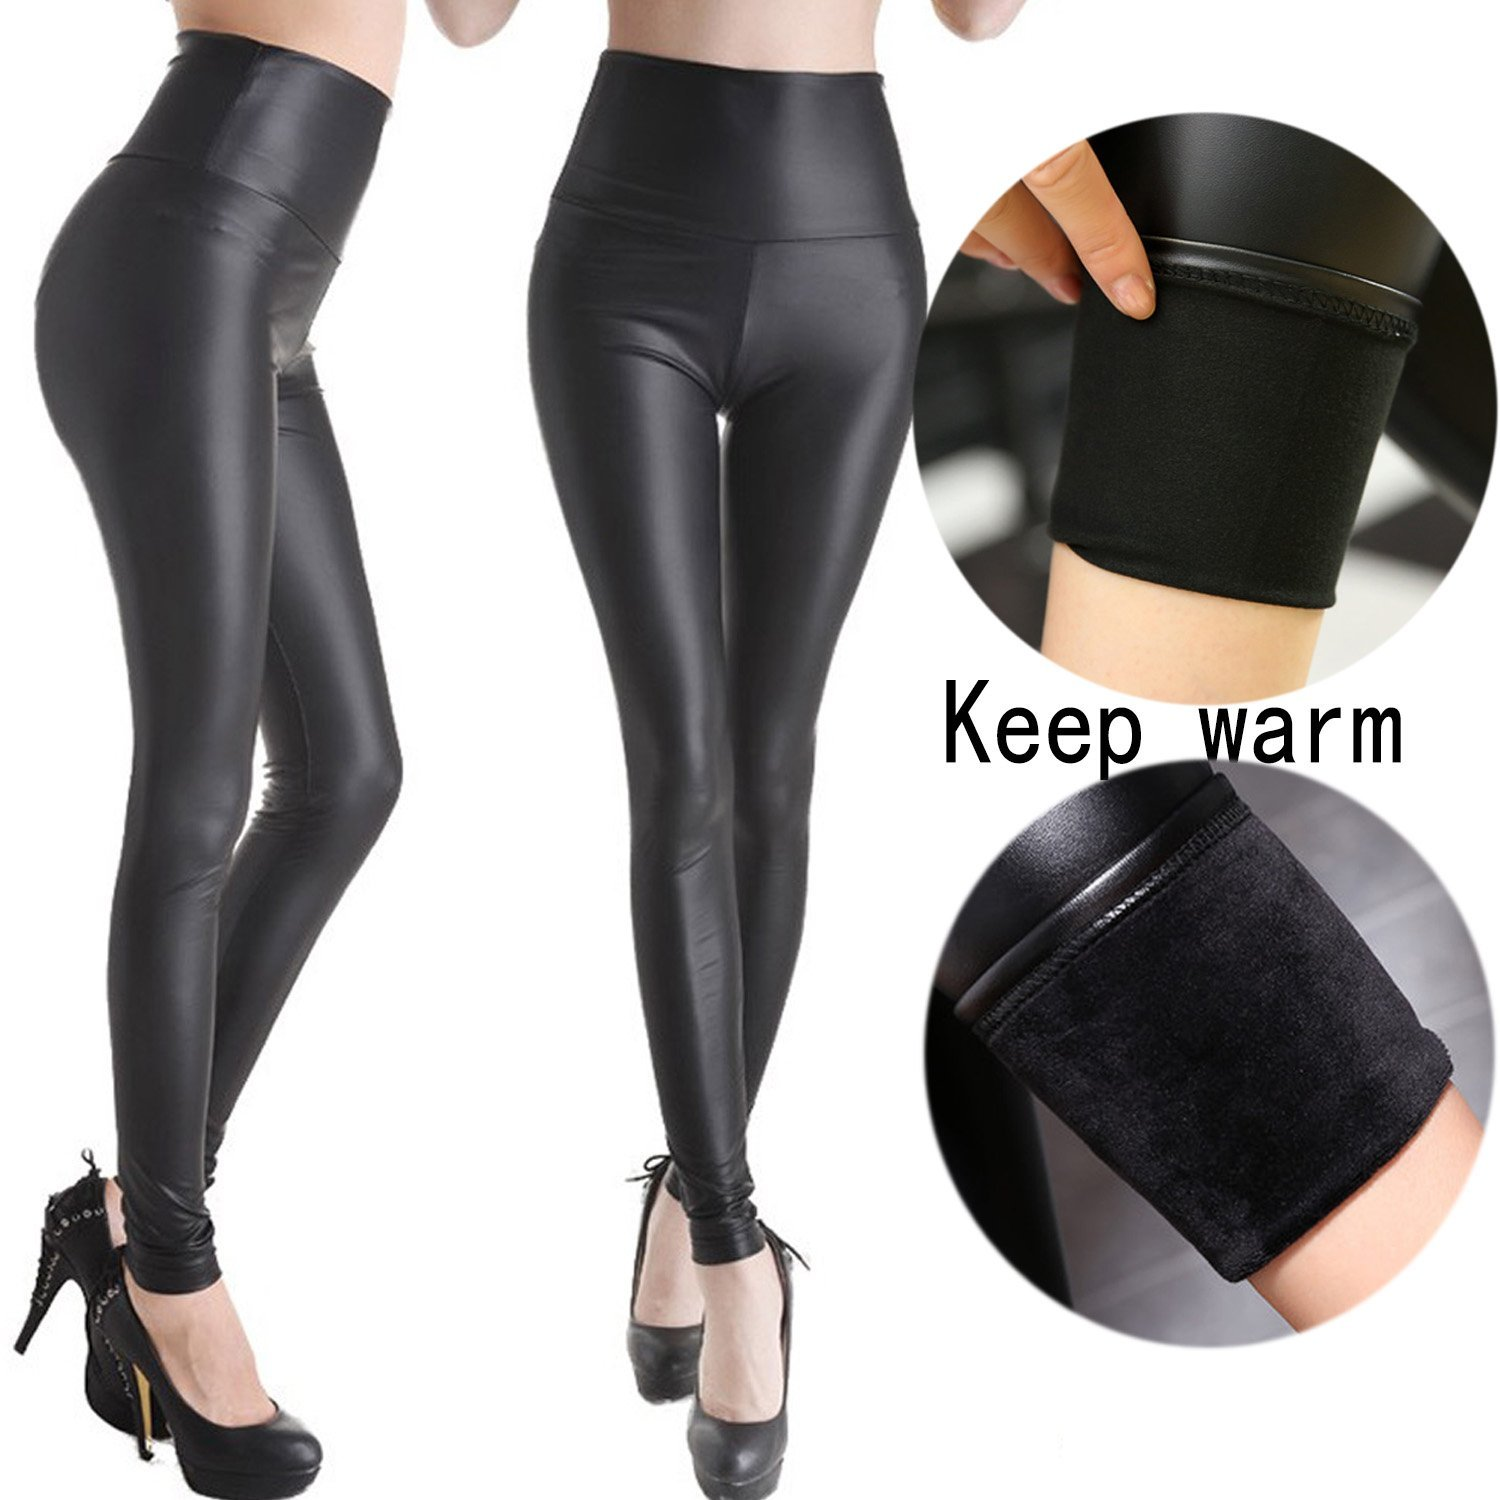 e1dd3b2eb092 Get Quotations · CROSS1946 Sexy Womens Warm Faux Leather High Waisted PU  Velvet Leggings Tight Stretchy Cashmere Pants Hot